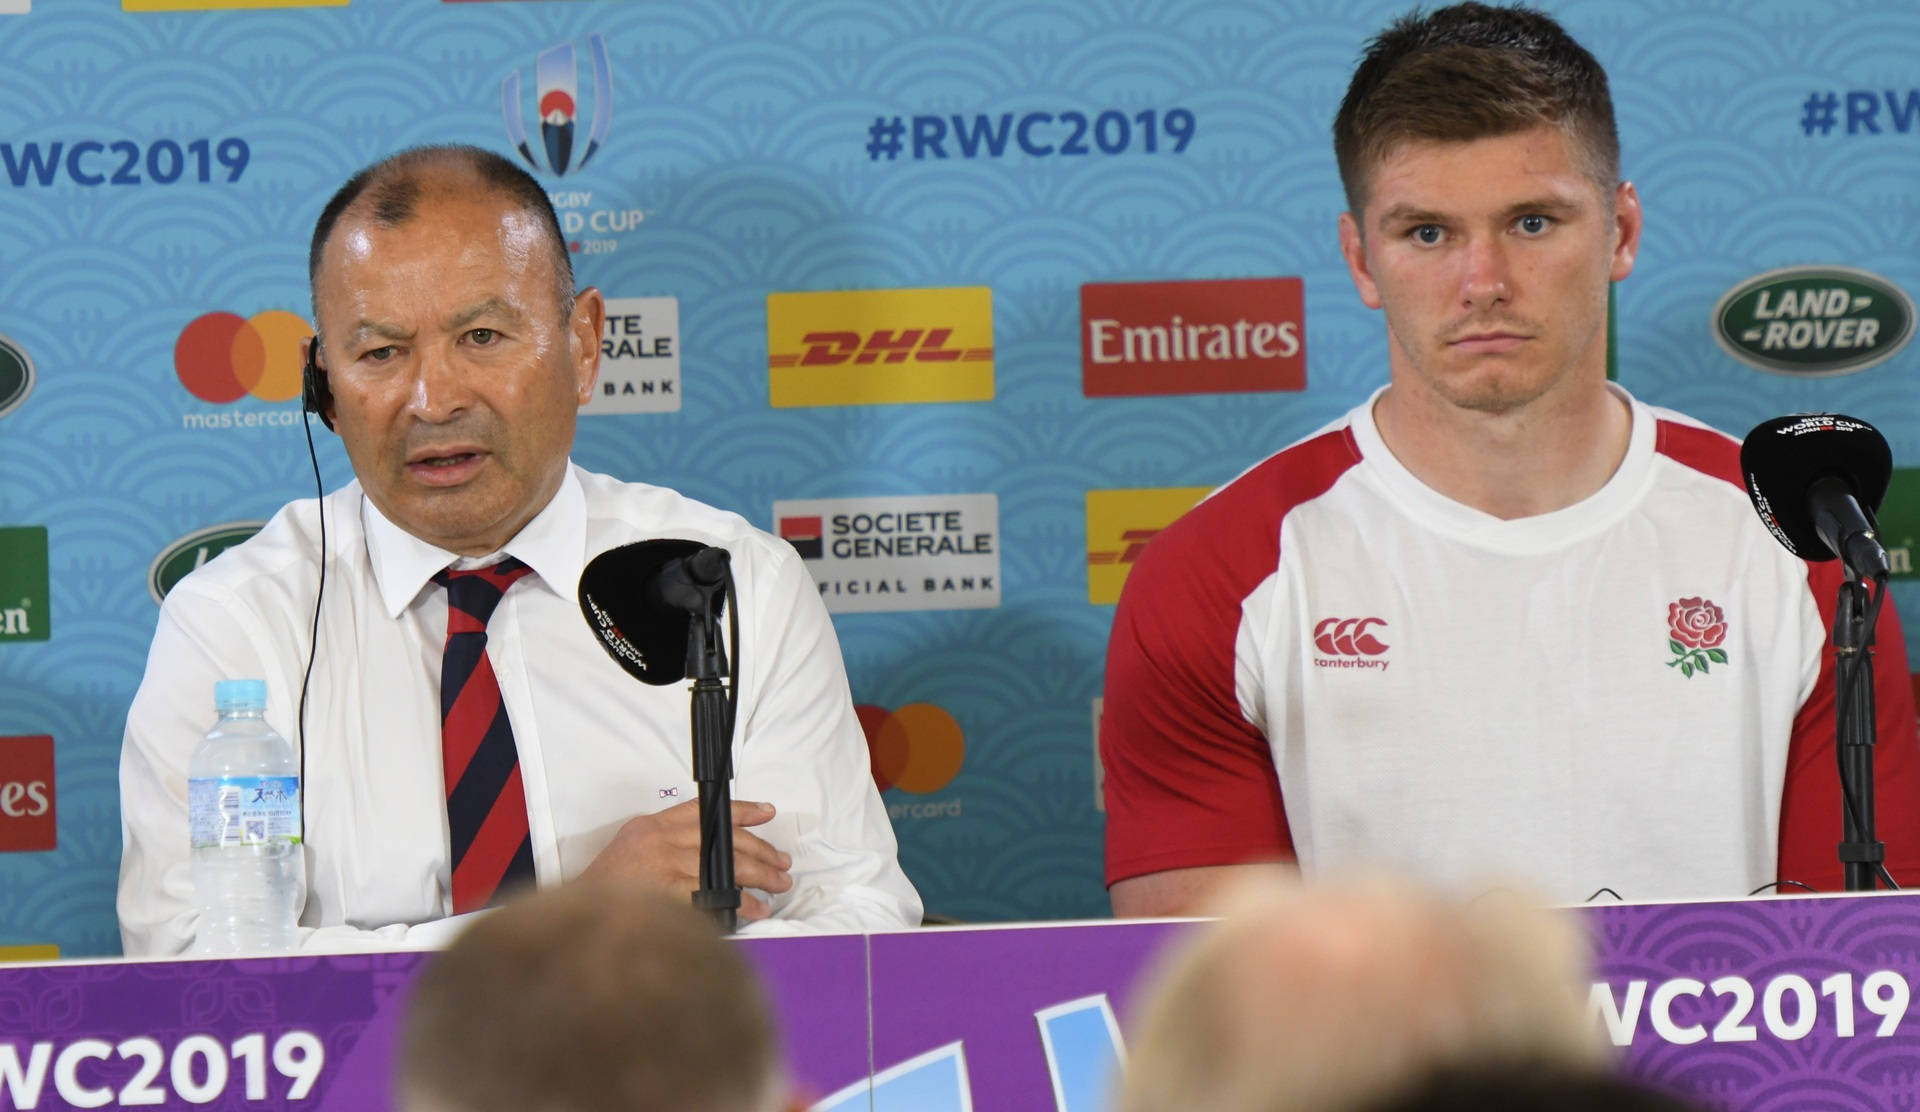 World Cup live: England quizzed on Eddie Jones' shock claims